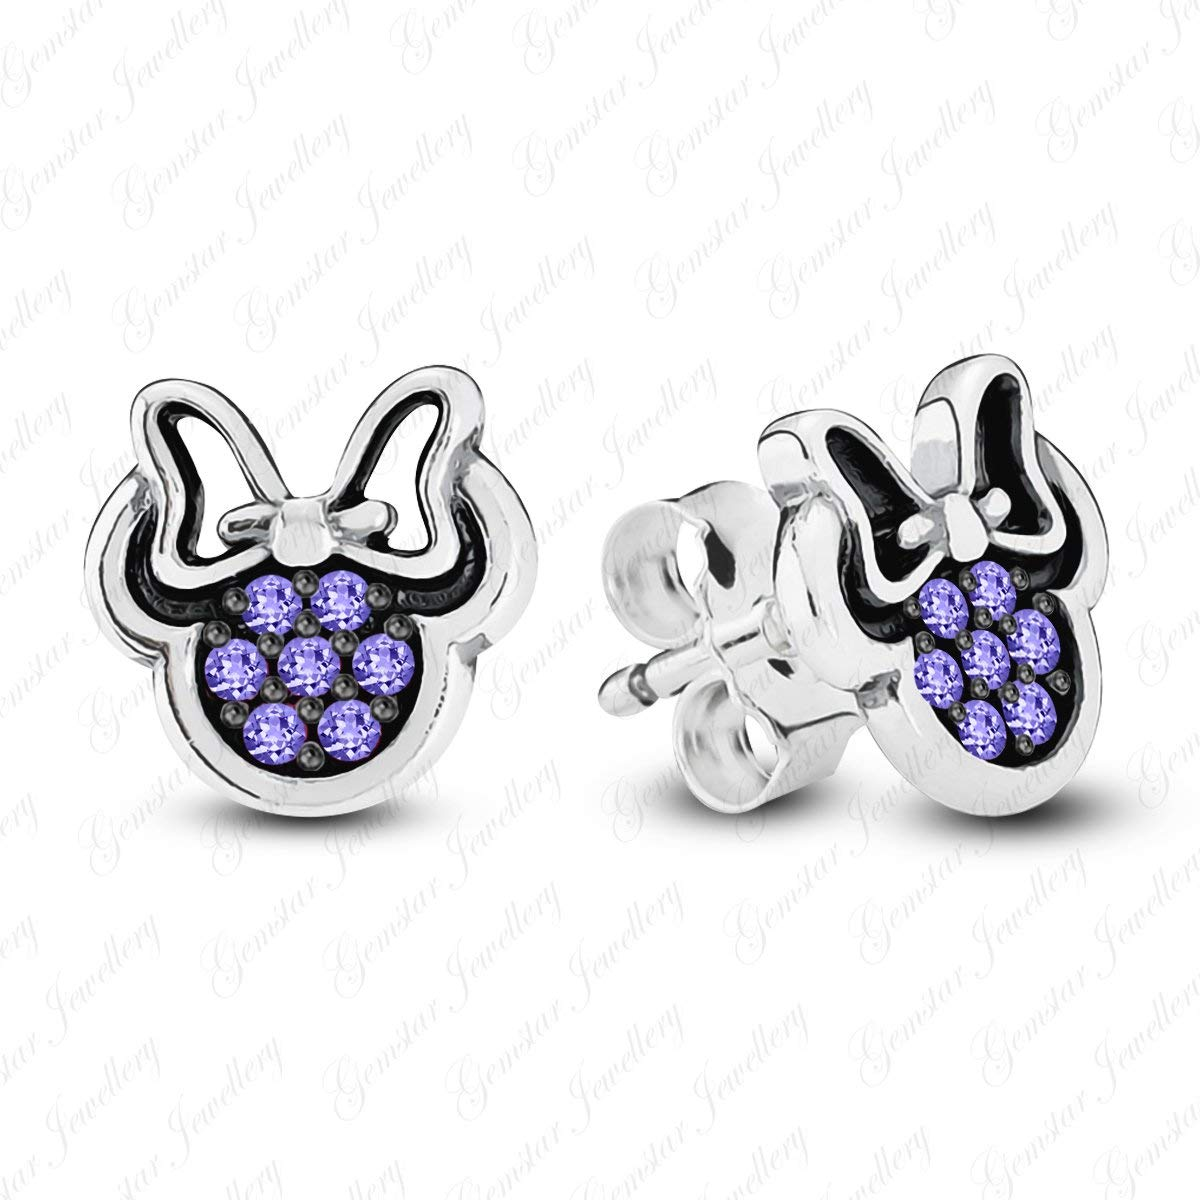 Gemstar Jewellery 925 Silver Round Aquamarine Girls Minnie Mouse Bow Earrings In 14k Rose Gold Plated